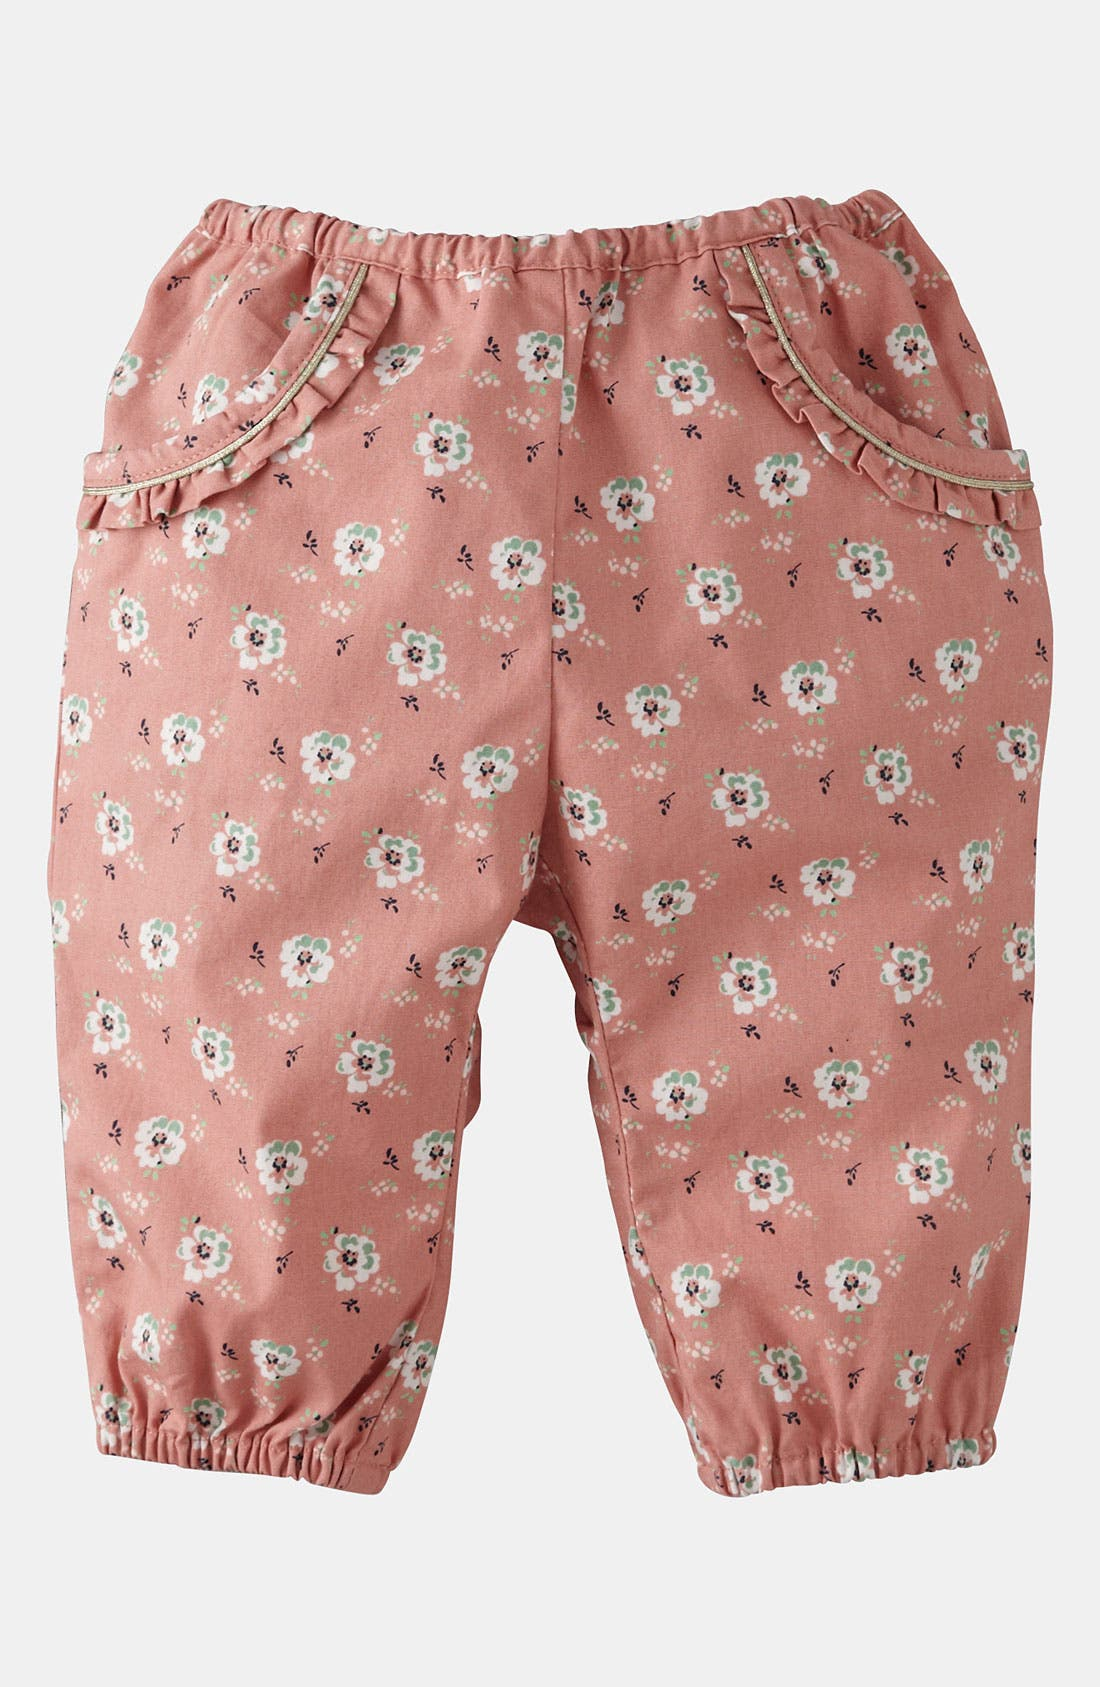 Alternate Image 1 Selected - Mini Boden 'Pretty' Pants (Baby)